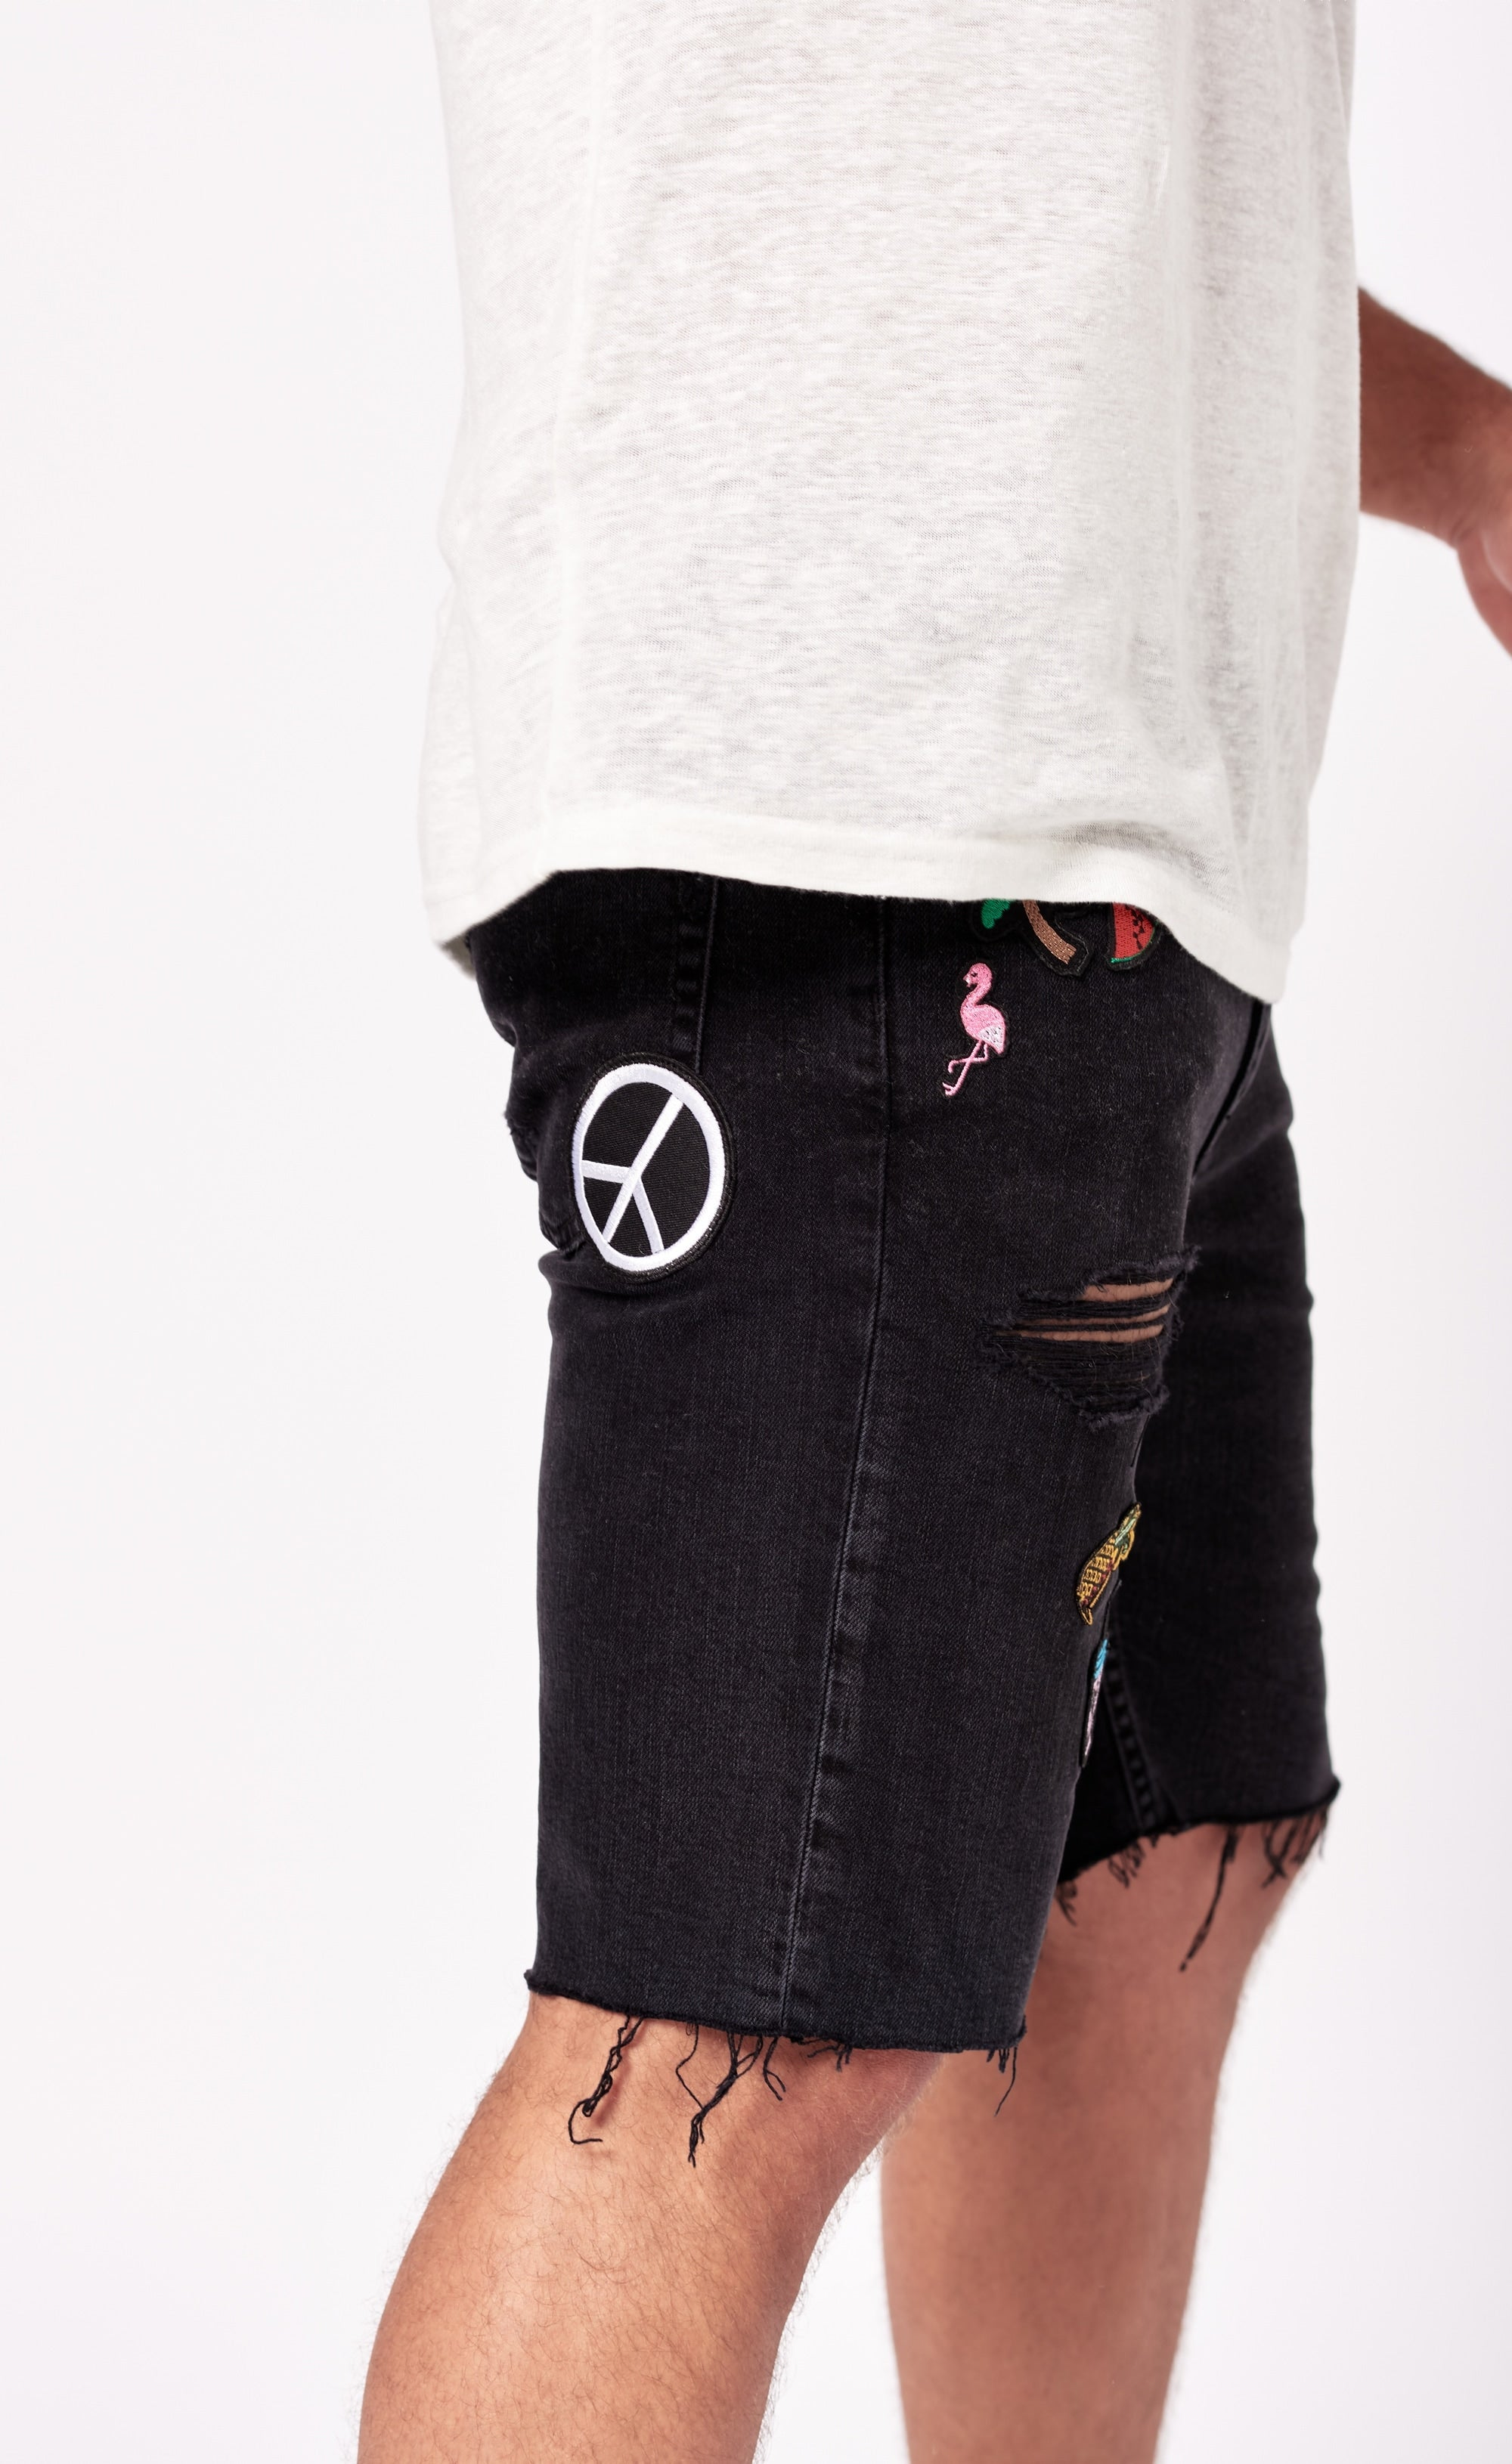 DENIM SHORTS PATCHES - BLACK - Forage-Clothing